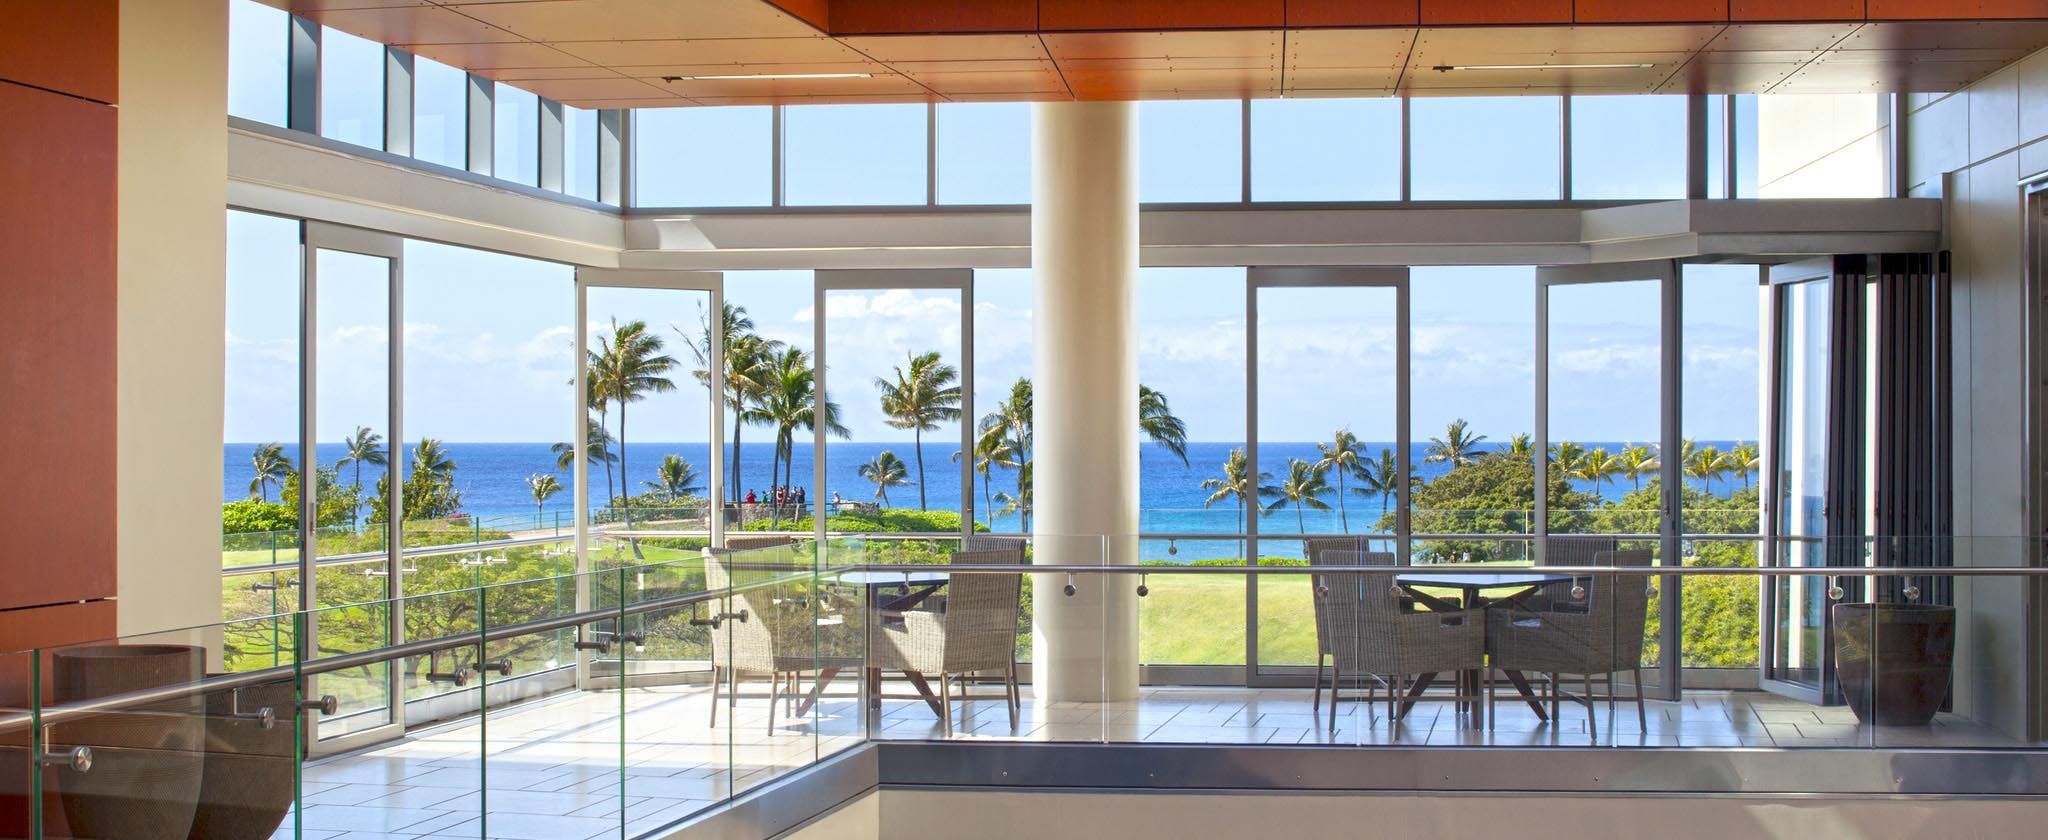 Commercial moveable glass walls - Ocean view floor with multiple opening sliding glass doors